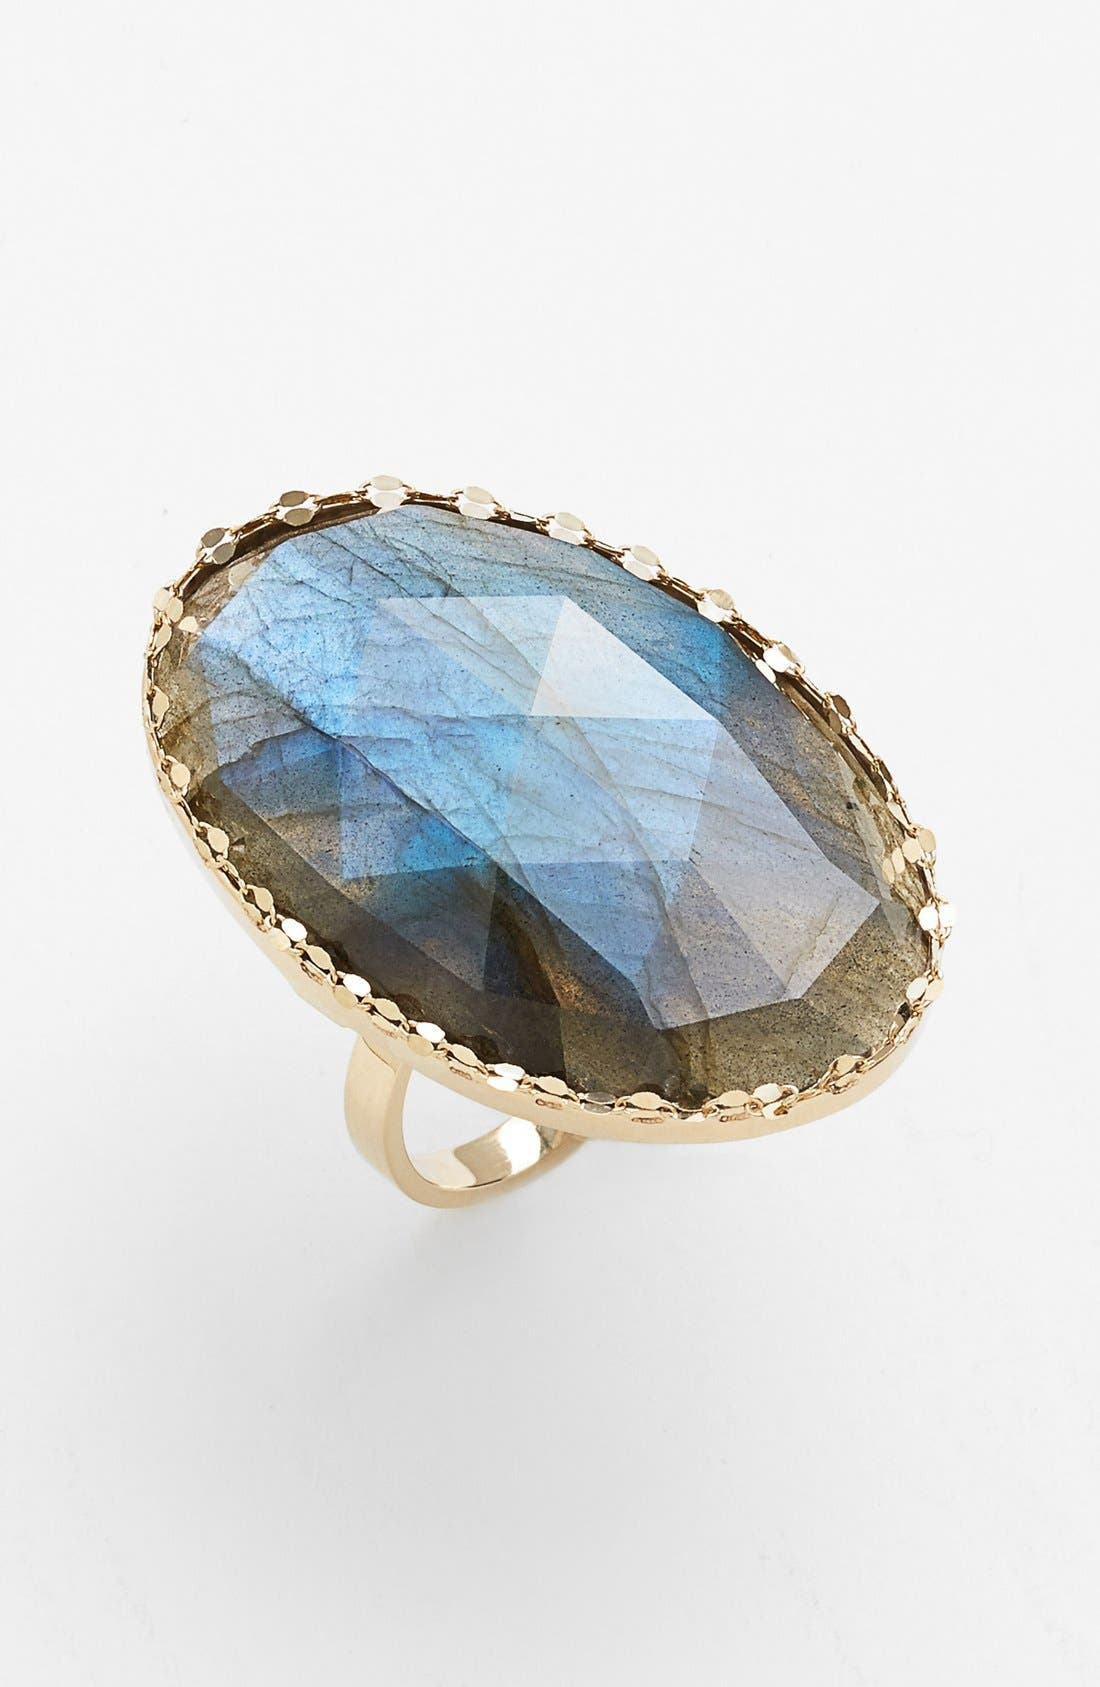 Main Image - Lana Jewelry 'Ultra' Large Labradorite Ring